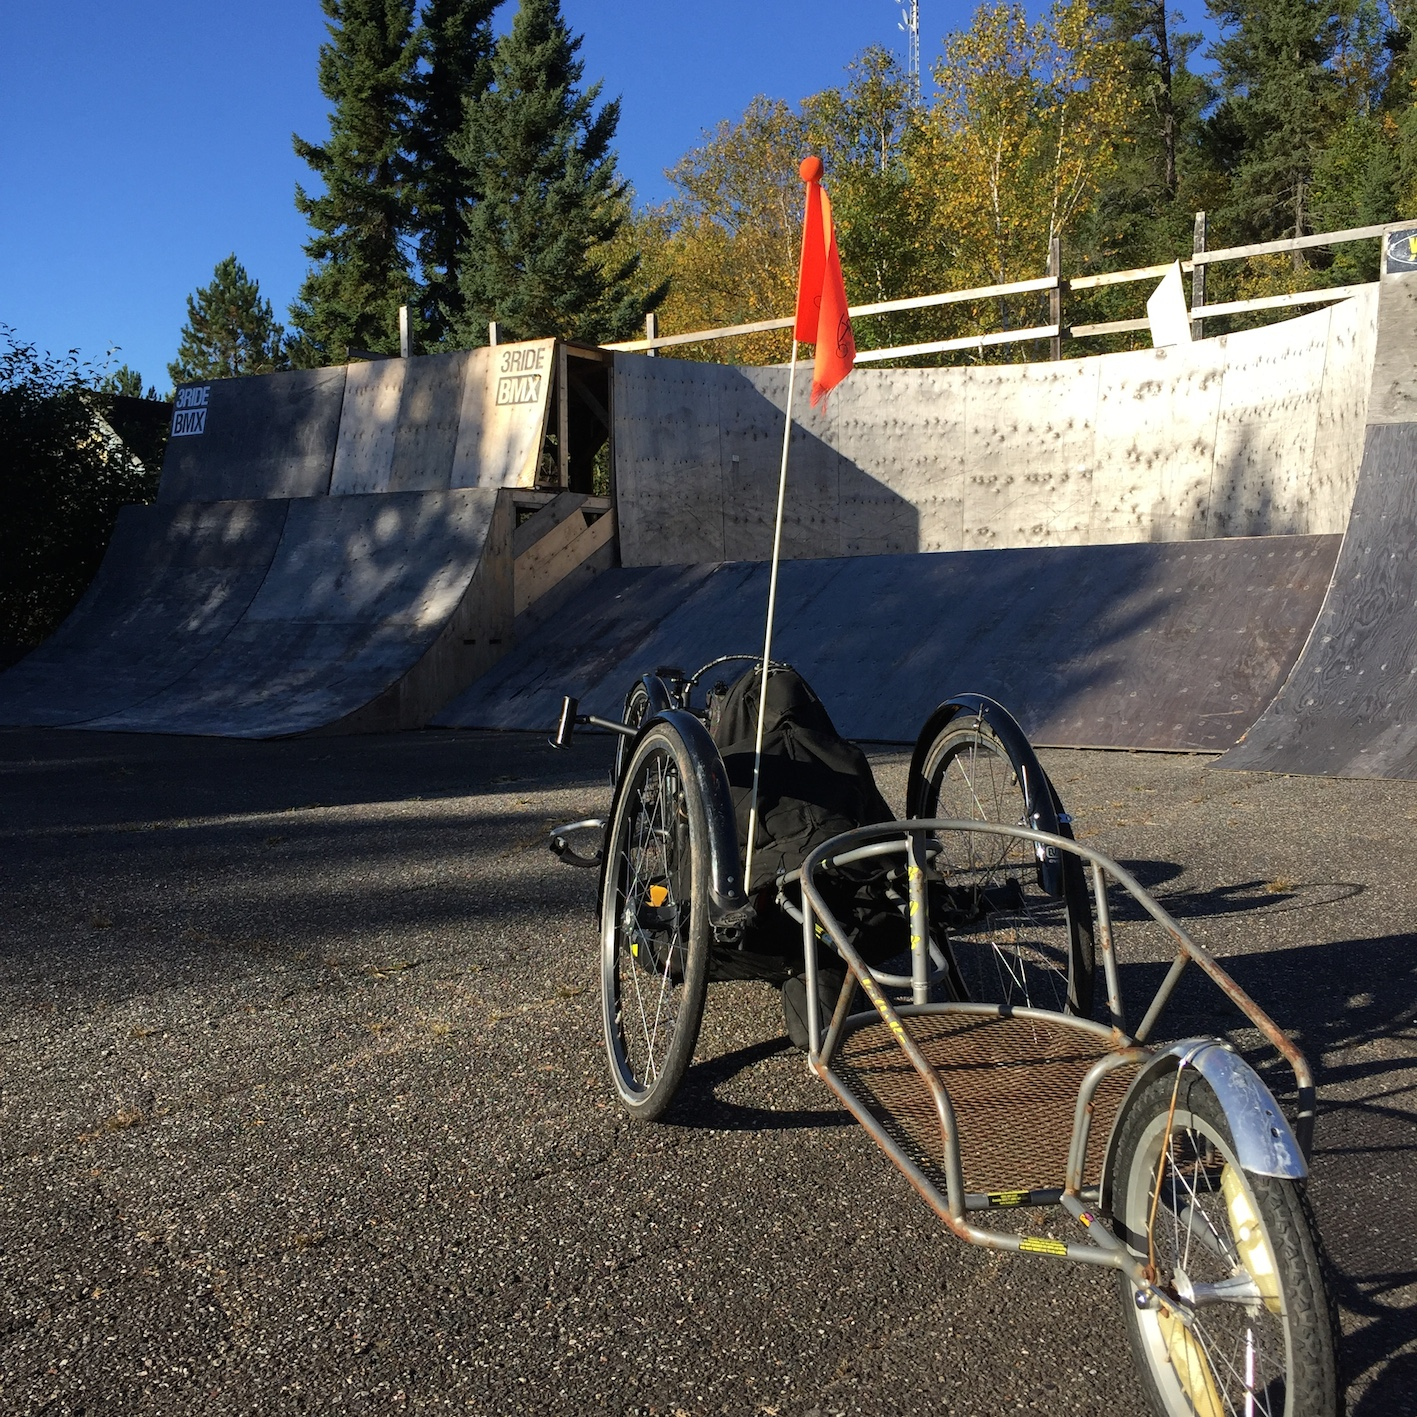 """Check out that sick Handcycle!"" said no BMX biker ever."